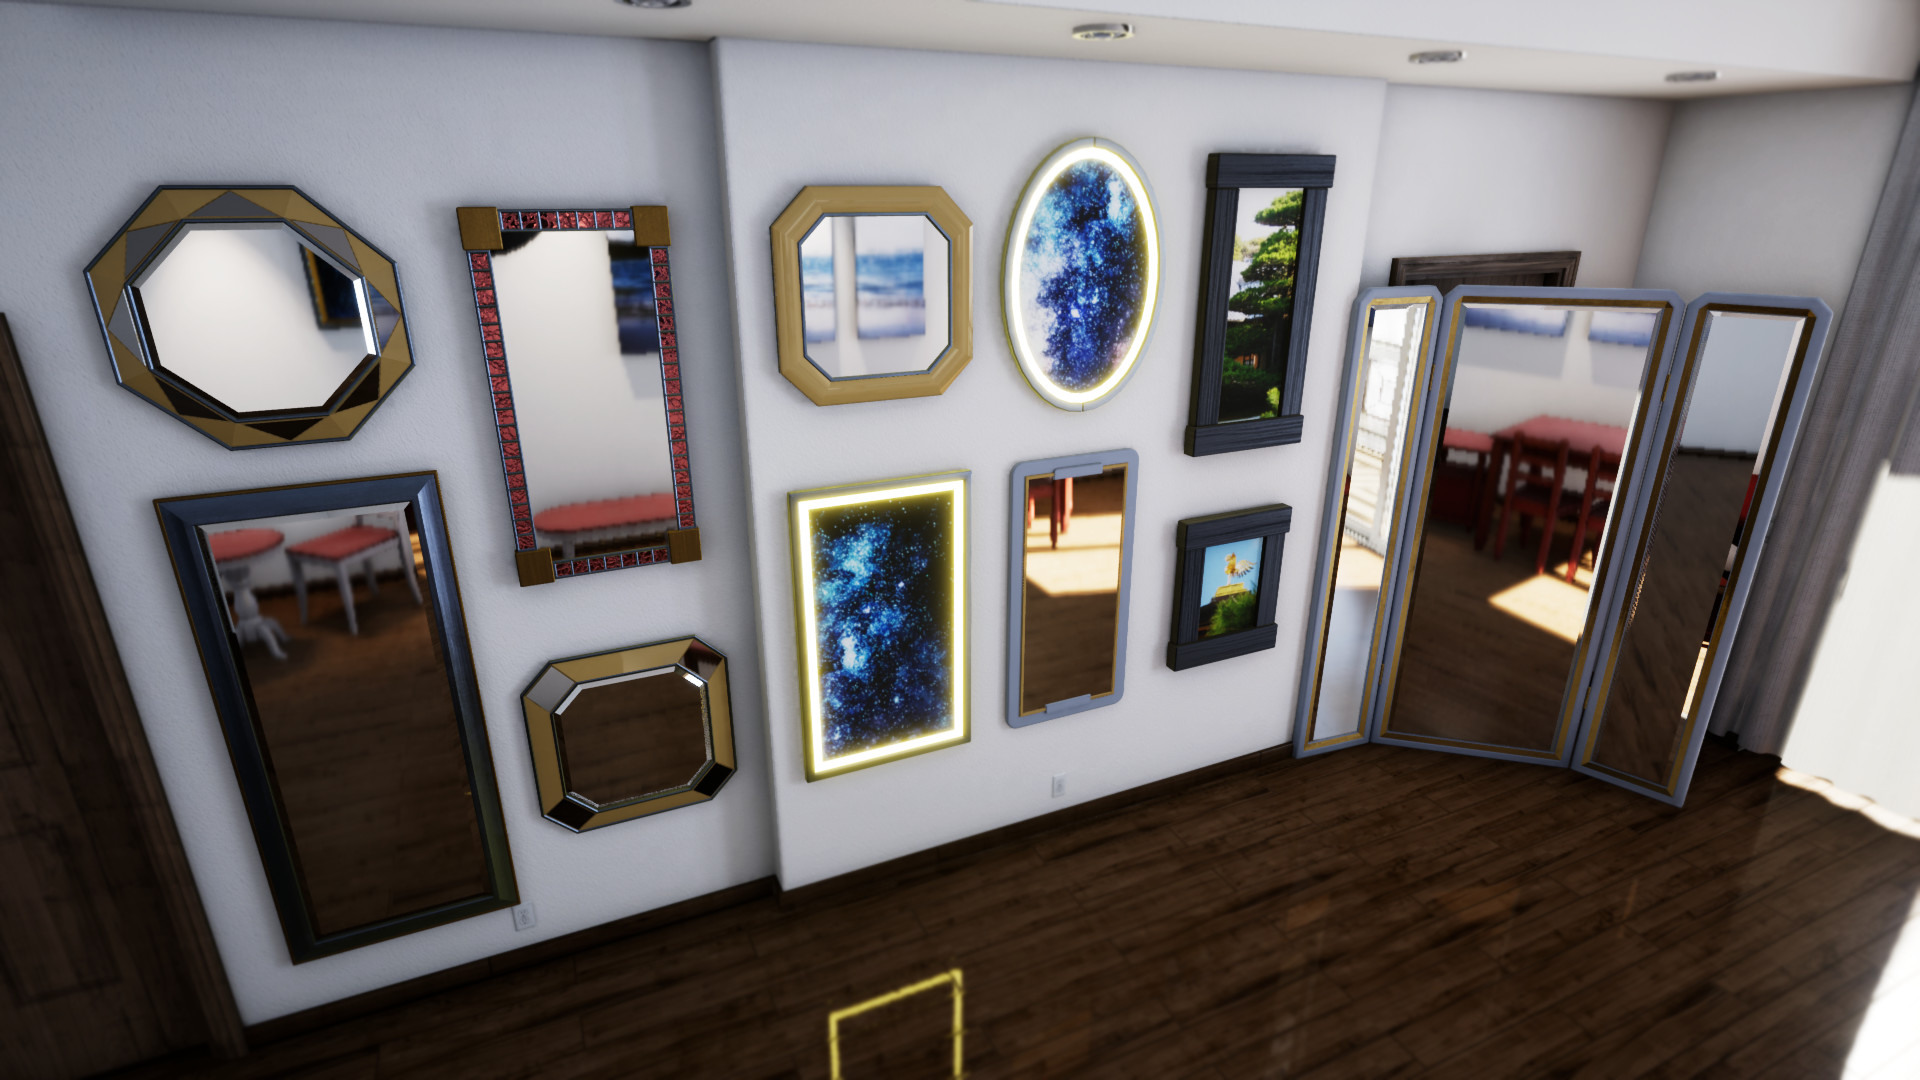 A couple shots of the objects in Unreal.